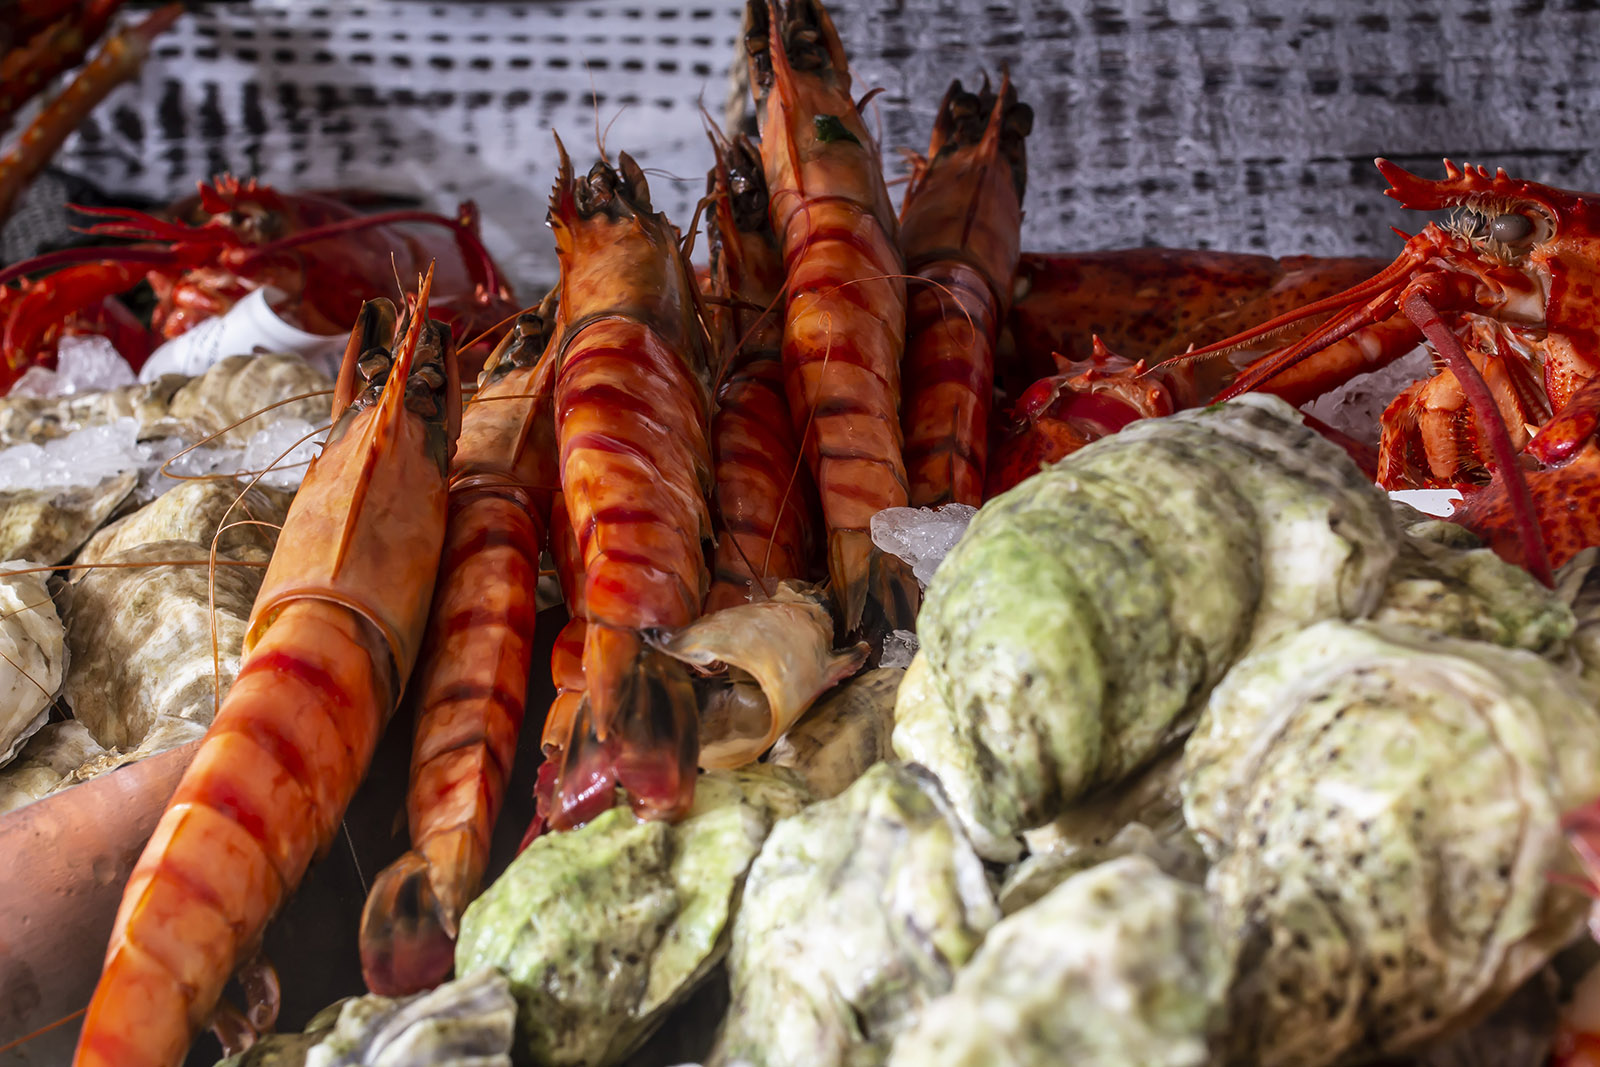 Simeons Raw Bar_IMG_5309 WEBSITE.jpg